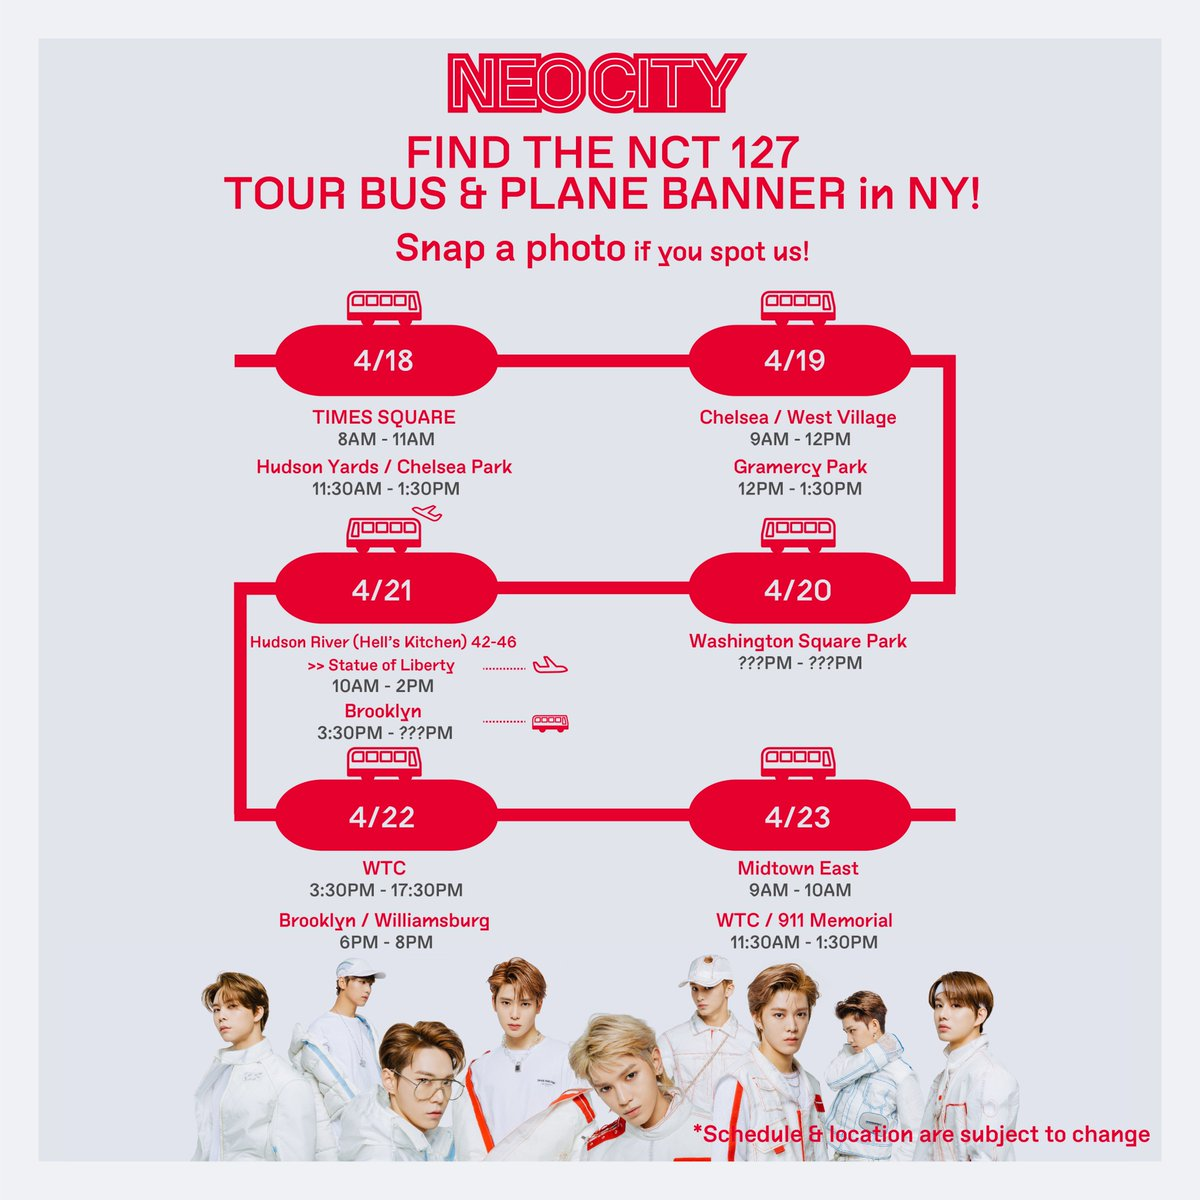 FIND THE NCT 127 TOUR BUS &amp; PLANE BANNER in NY!  snap a photo if you spot us!  The location for 20th was changed  #NEOCITY_TOURBUS  #NEOCITYinUSA #NCT127inUSA  #NEWYORK #NY #NCT127 #NEOCITY #NCT127TOTHEWORLD  #NCT127_1st_World_Tour<br>http://pic.twitter.com/05RxKS309I